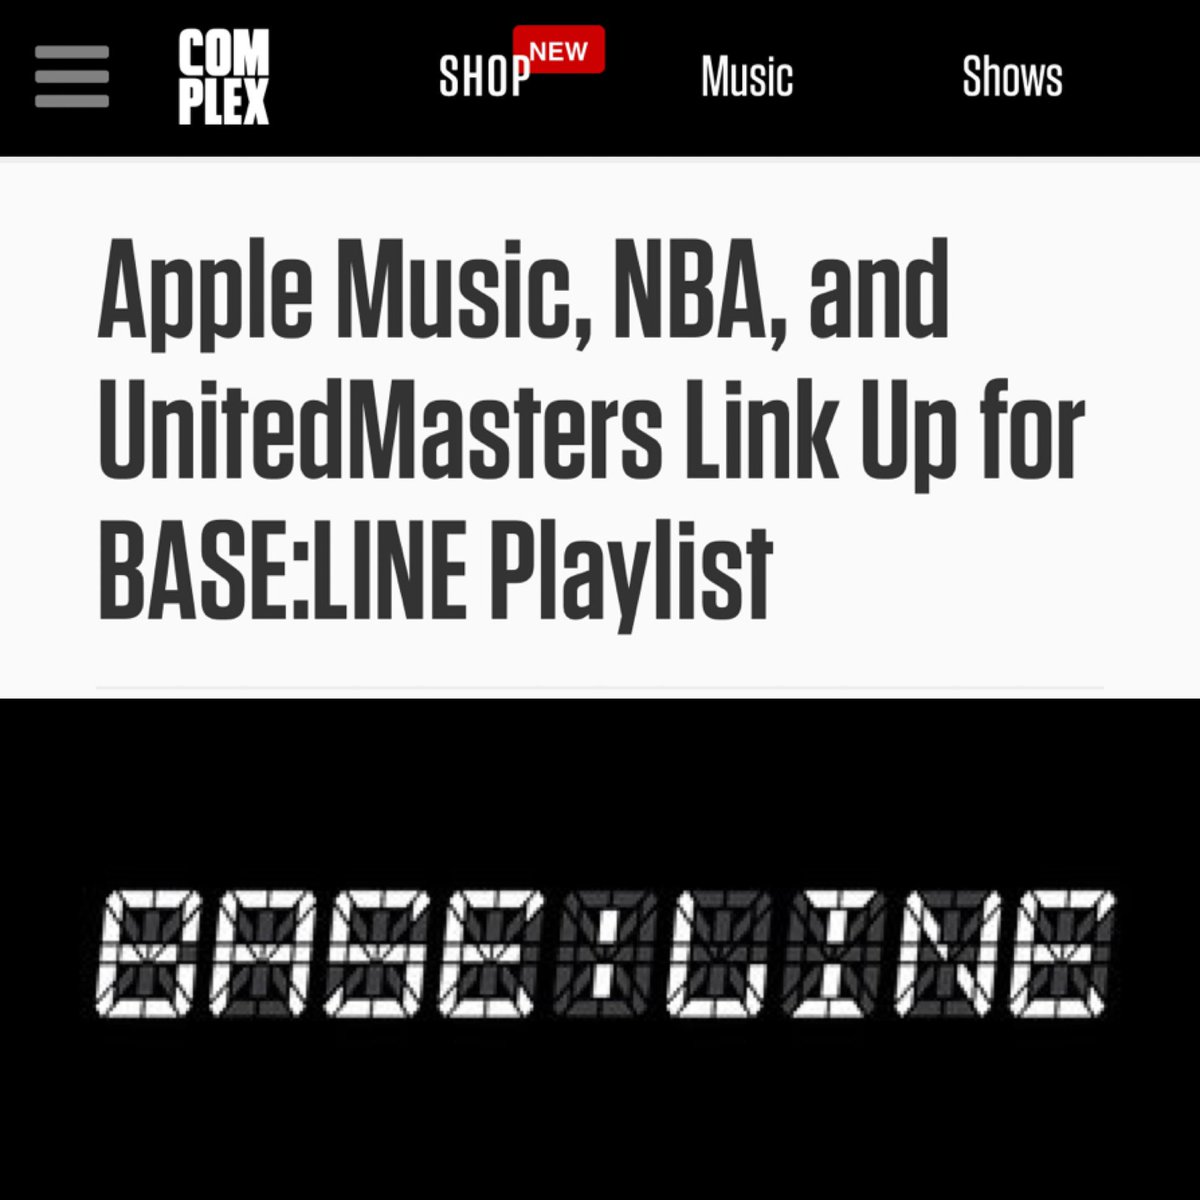 A new opportunity for independent artists. The first playlist of its kind.  Listen to BASE:LINE now exclusively on @AppleMusic: http://apple.co/BASELINE